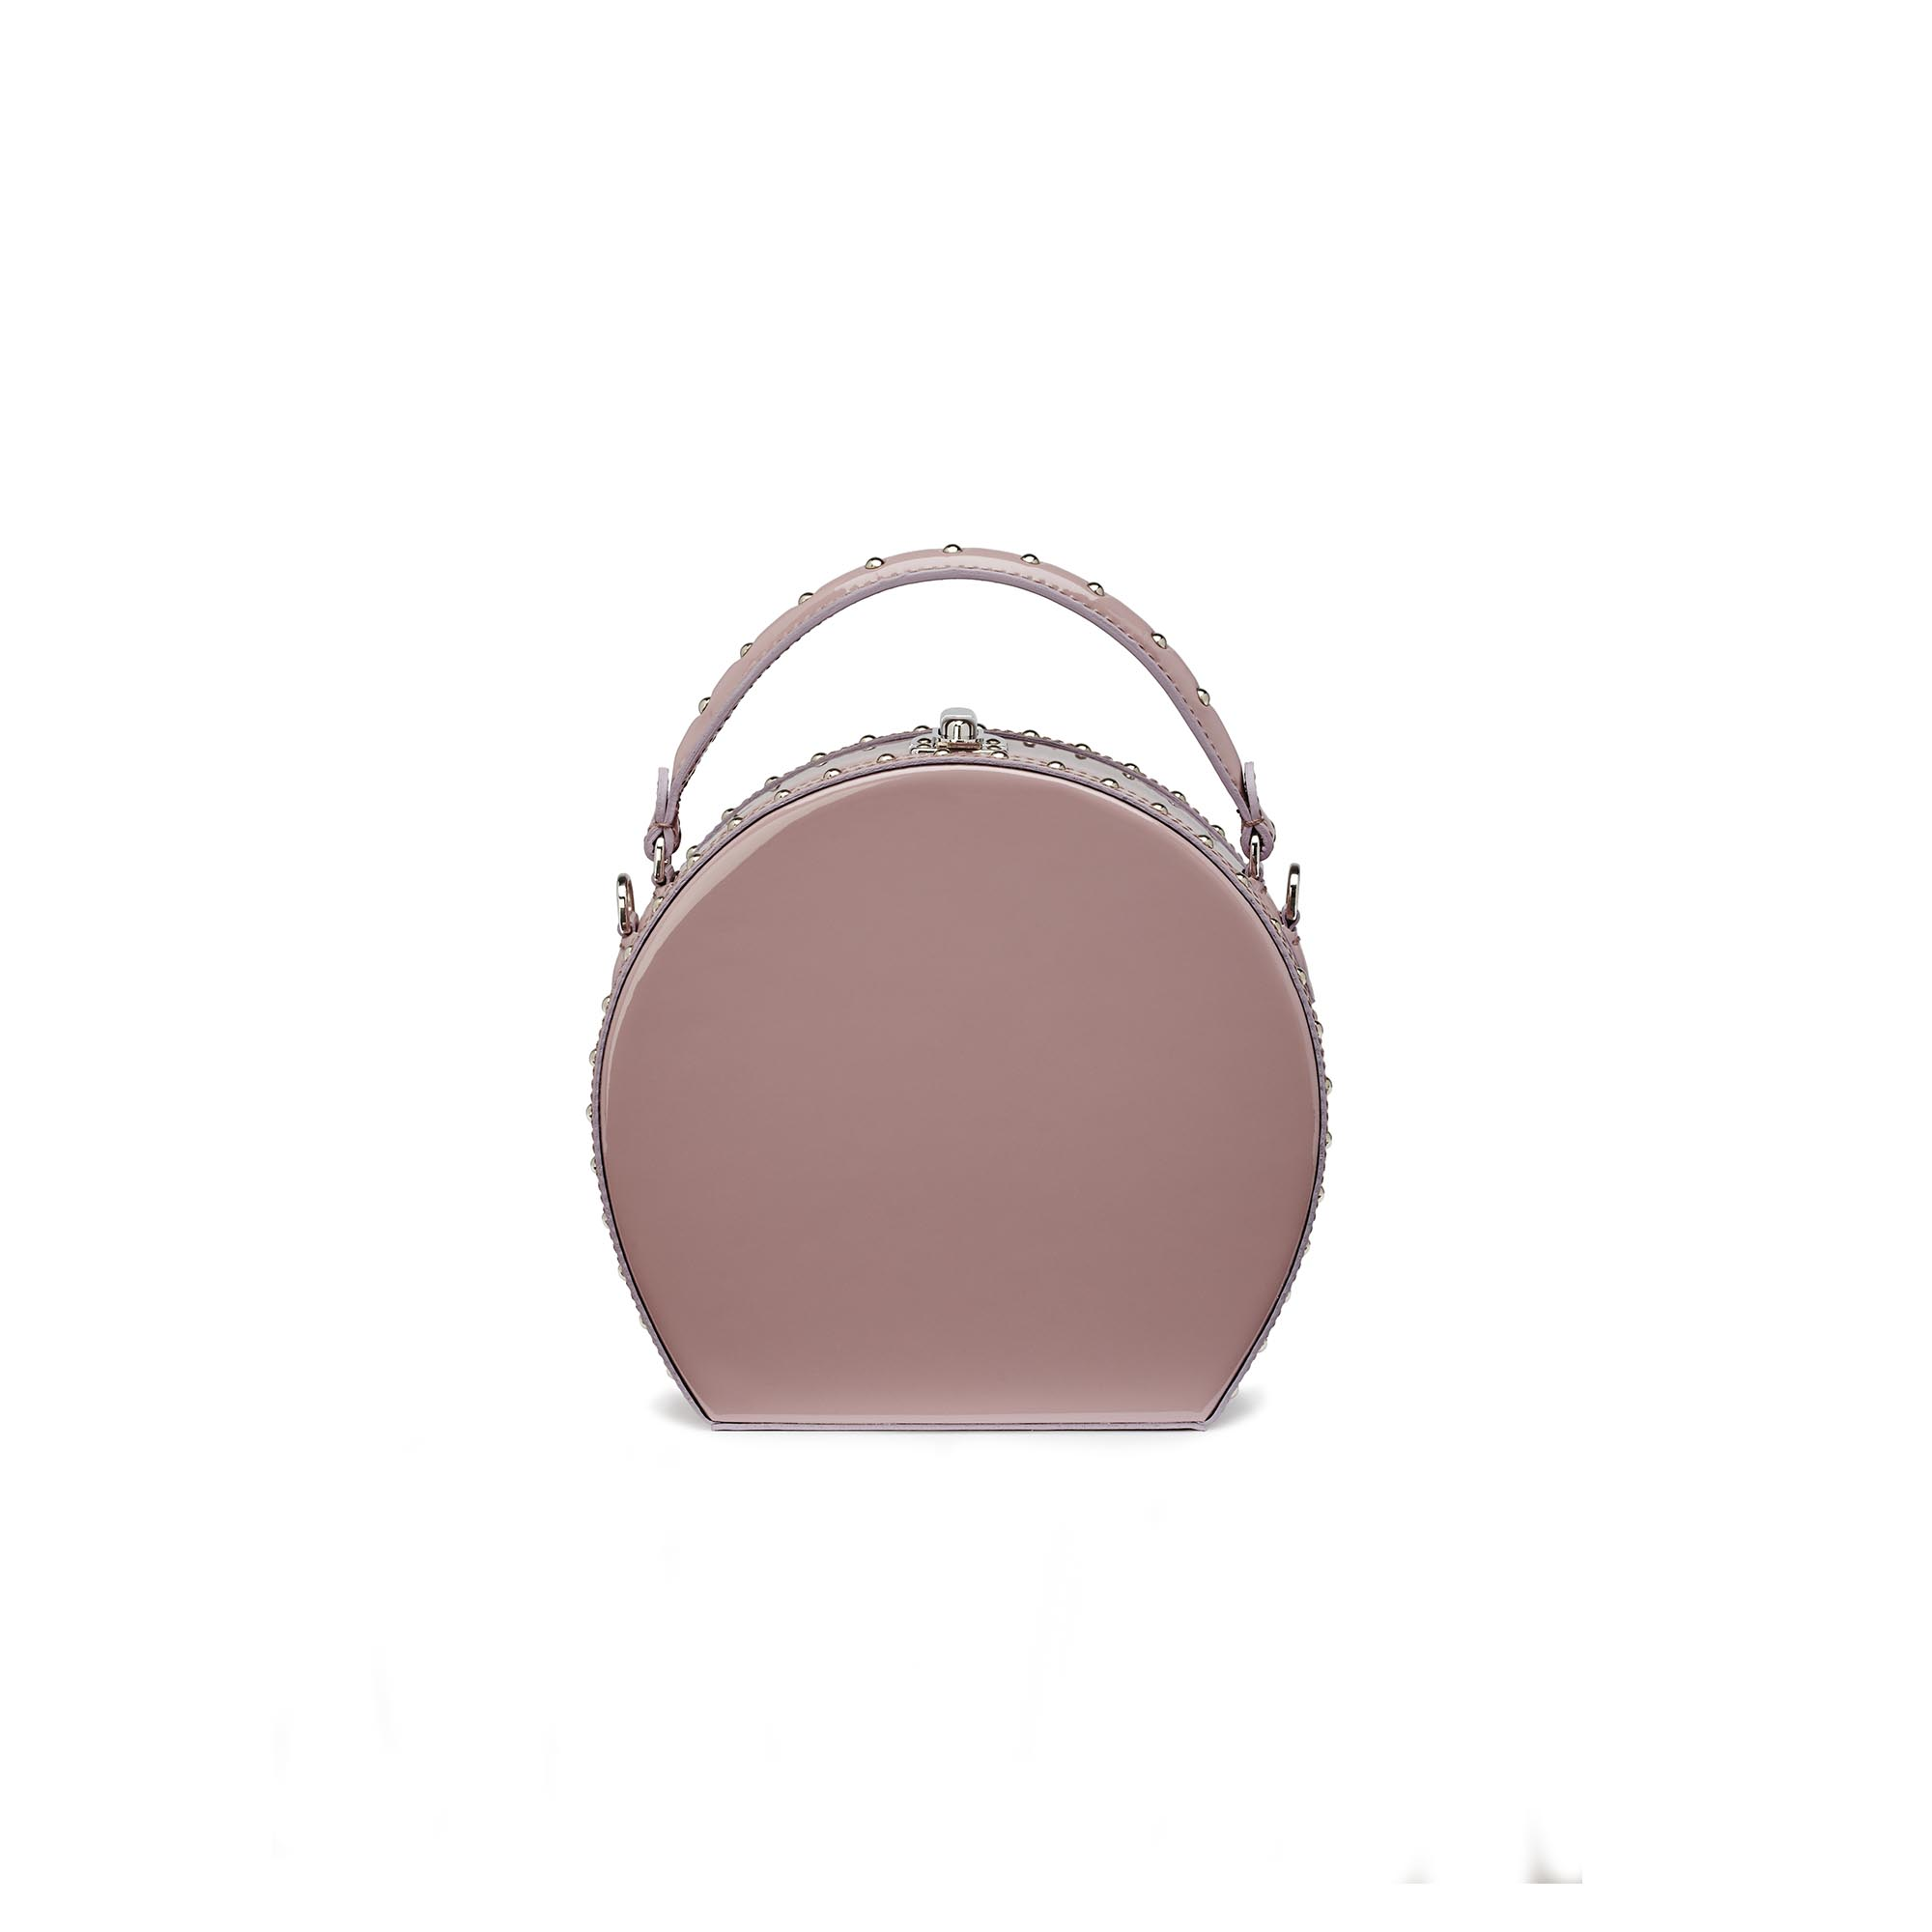 Regular-Bertoncina-mauve-patent-leather-bag-Bertoni-1949